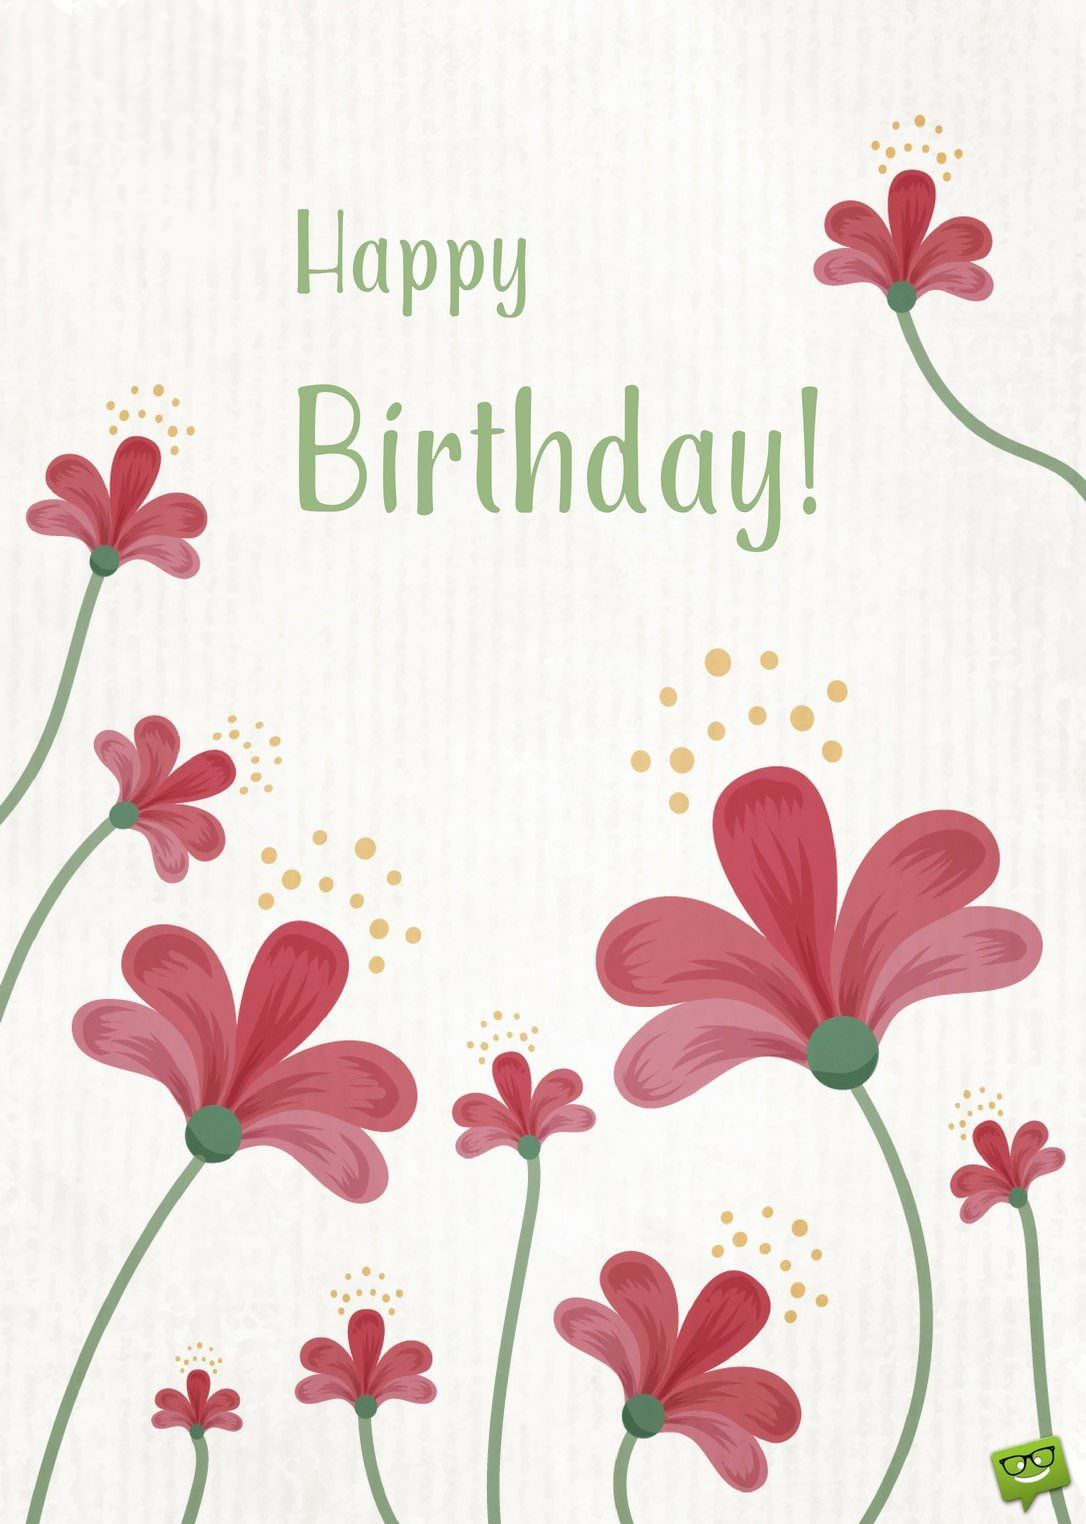 Happy birthday wish with cute red flowers blogdescrpition happy birthday izmirmasajfo Image collections